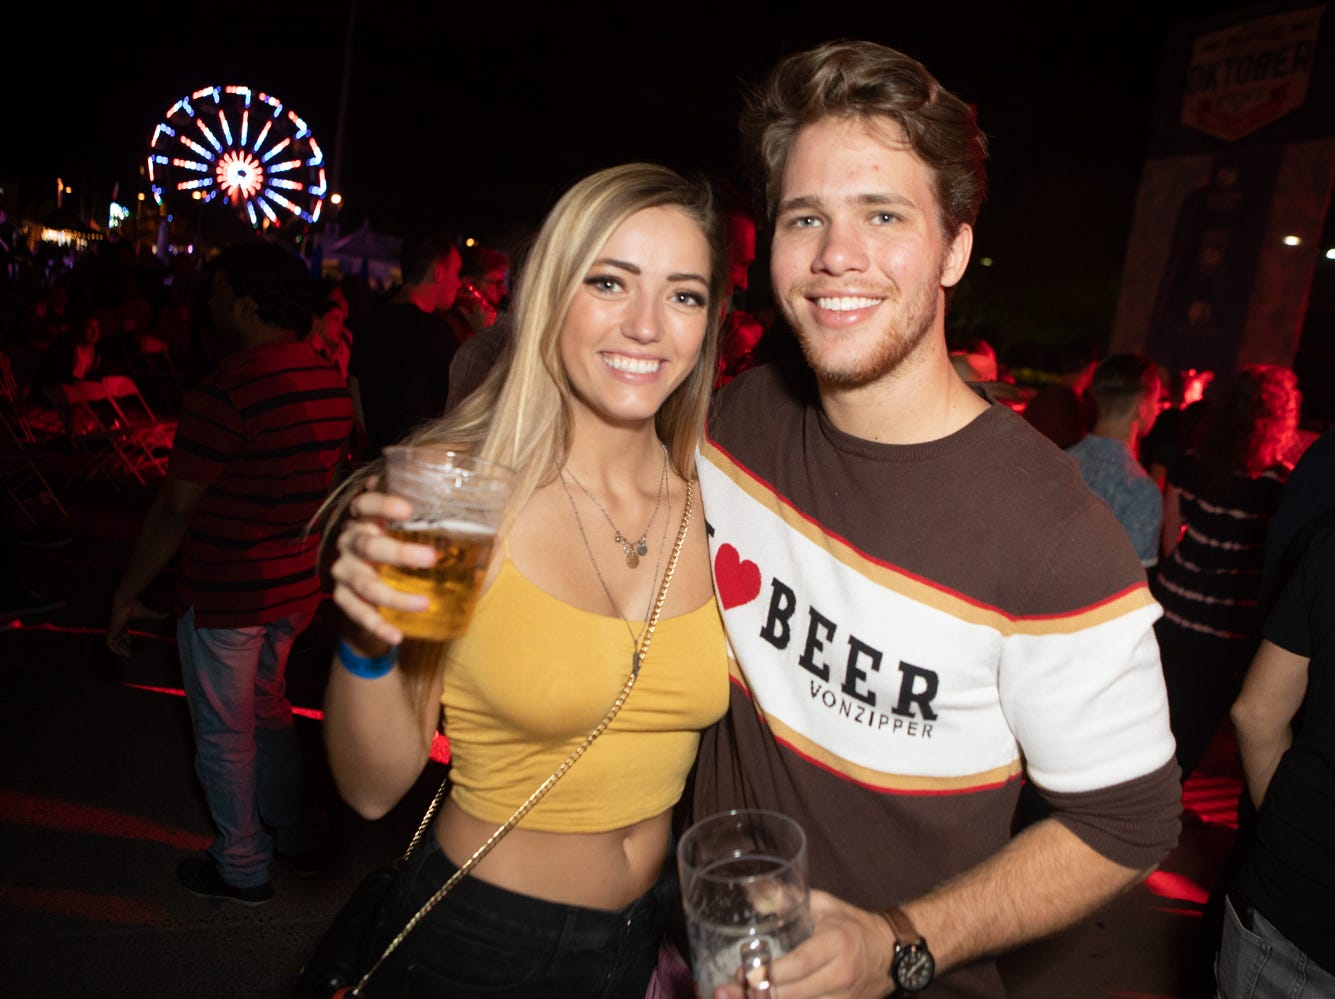 Thousands of people packed Tempe Beach Park for Four Peaks Oktoberfest on Friday, Oct. 12, 2018 in Tempe.